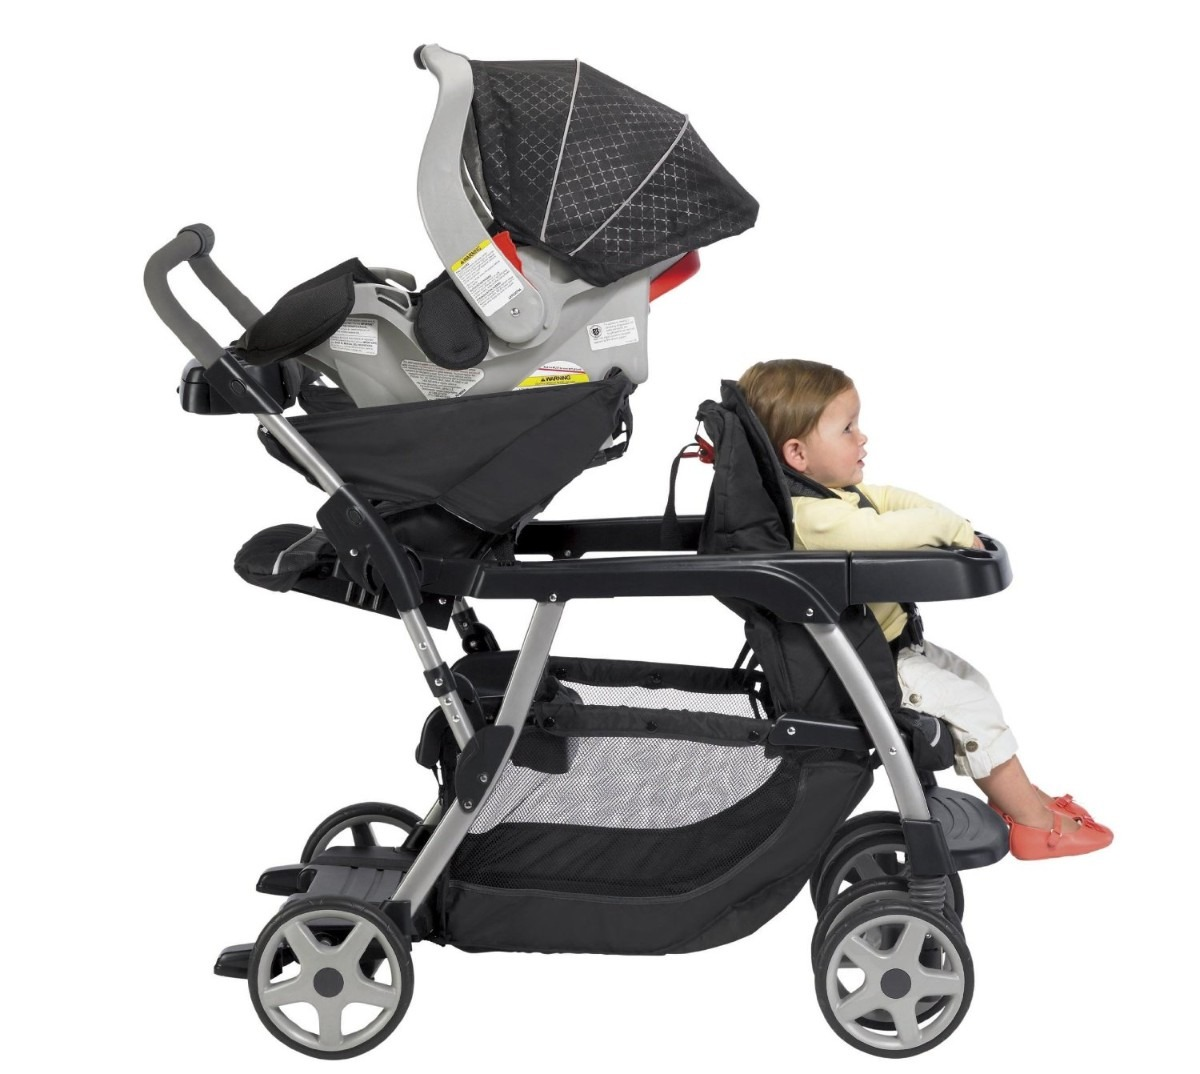 Carreola Para Bebe Graco Doble Ready2grow Hm4   589900